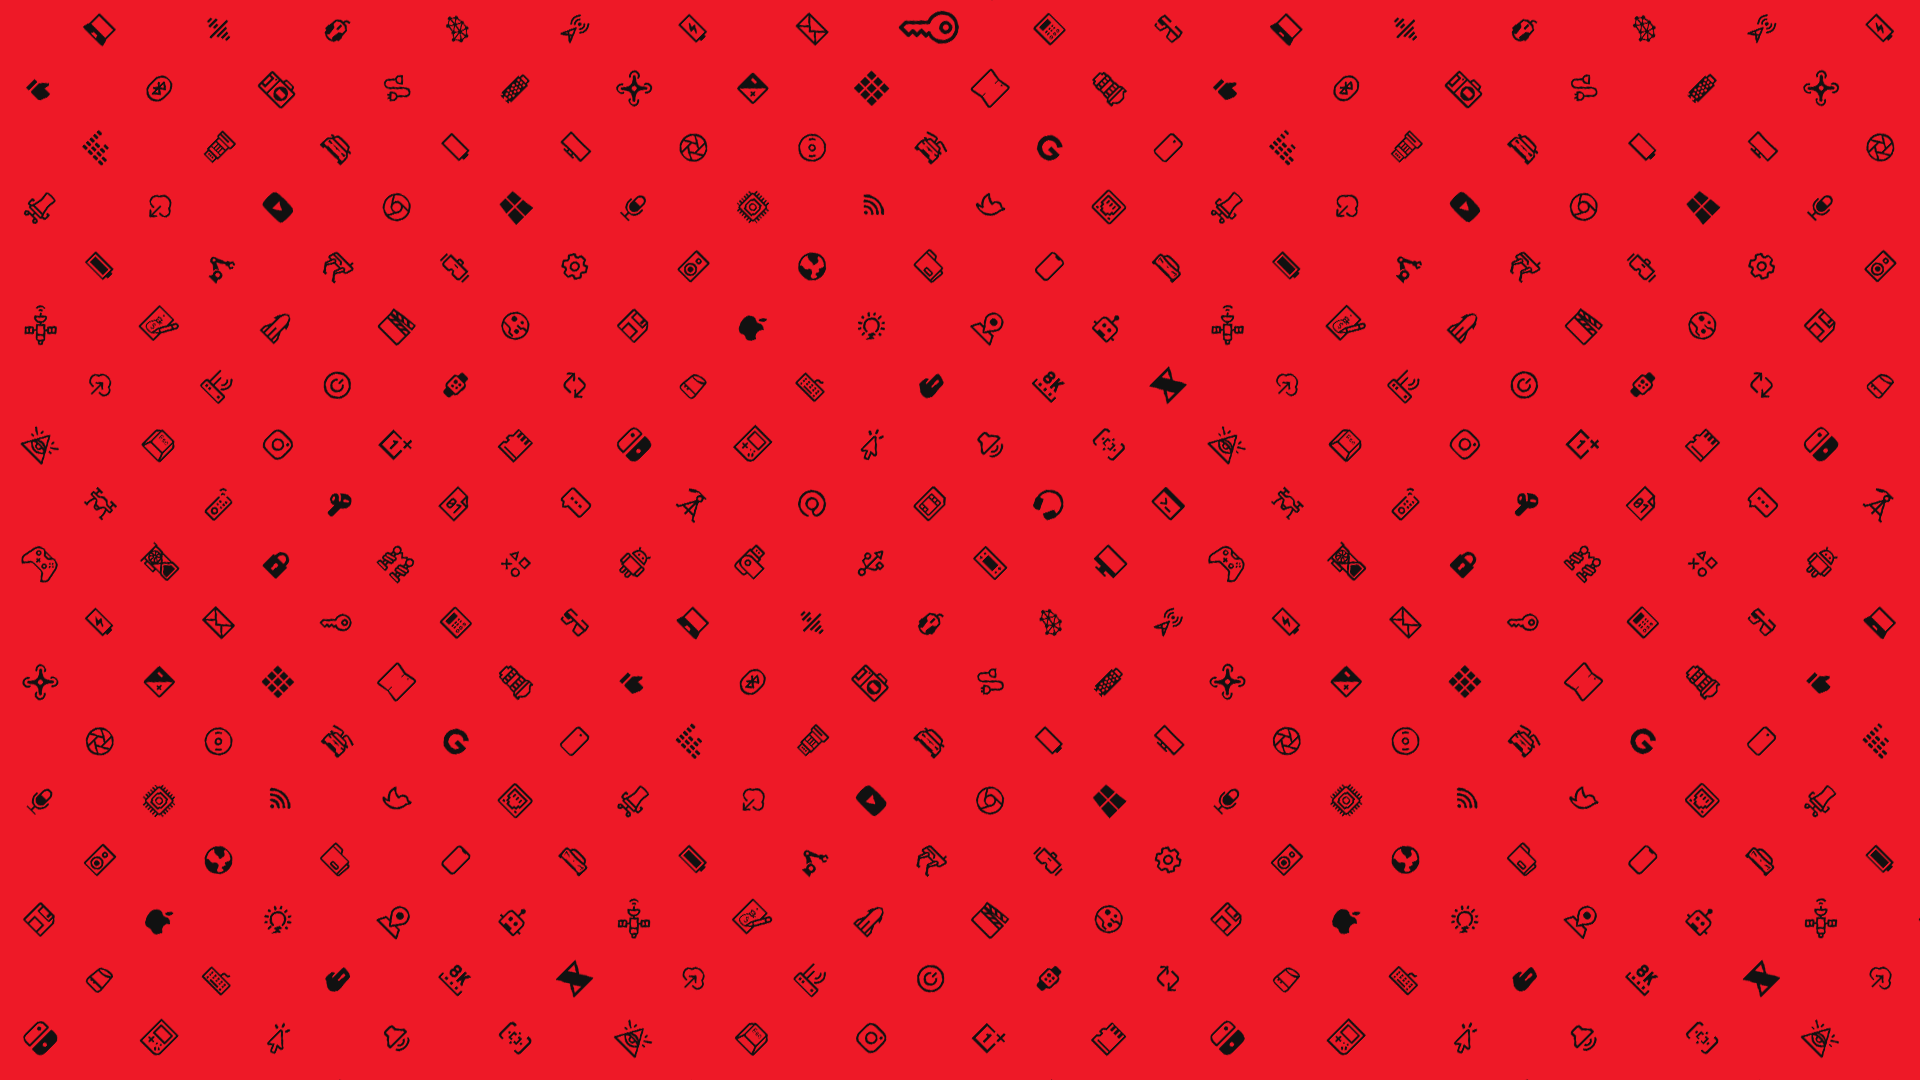 mkbhd red icons desktop wallpaper